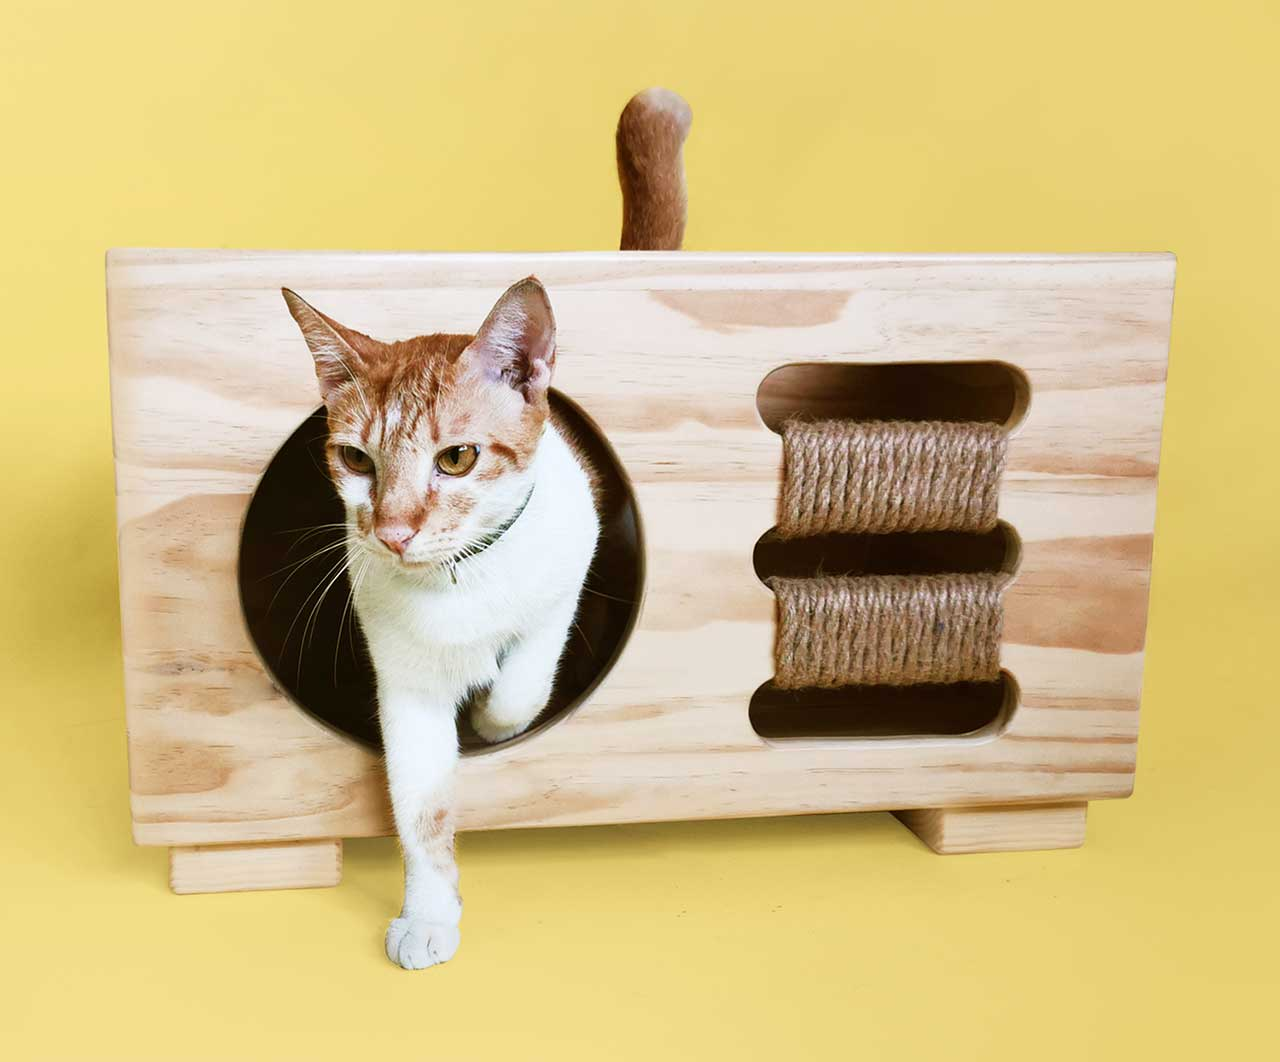 Modern, Multifunctional Furniture for Dogs + Cats Suitable for Any Room